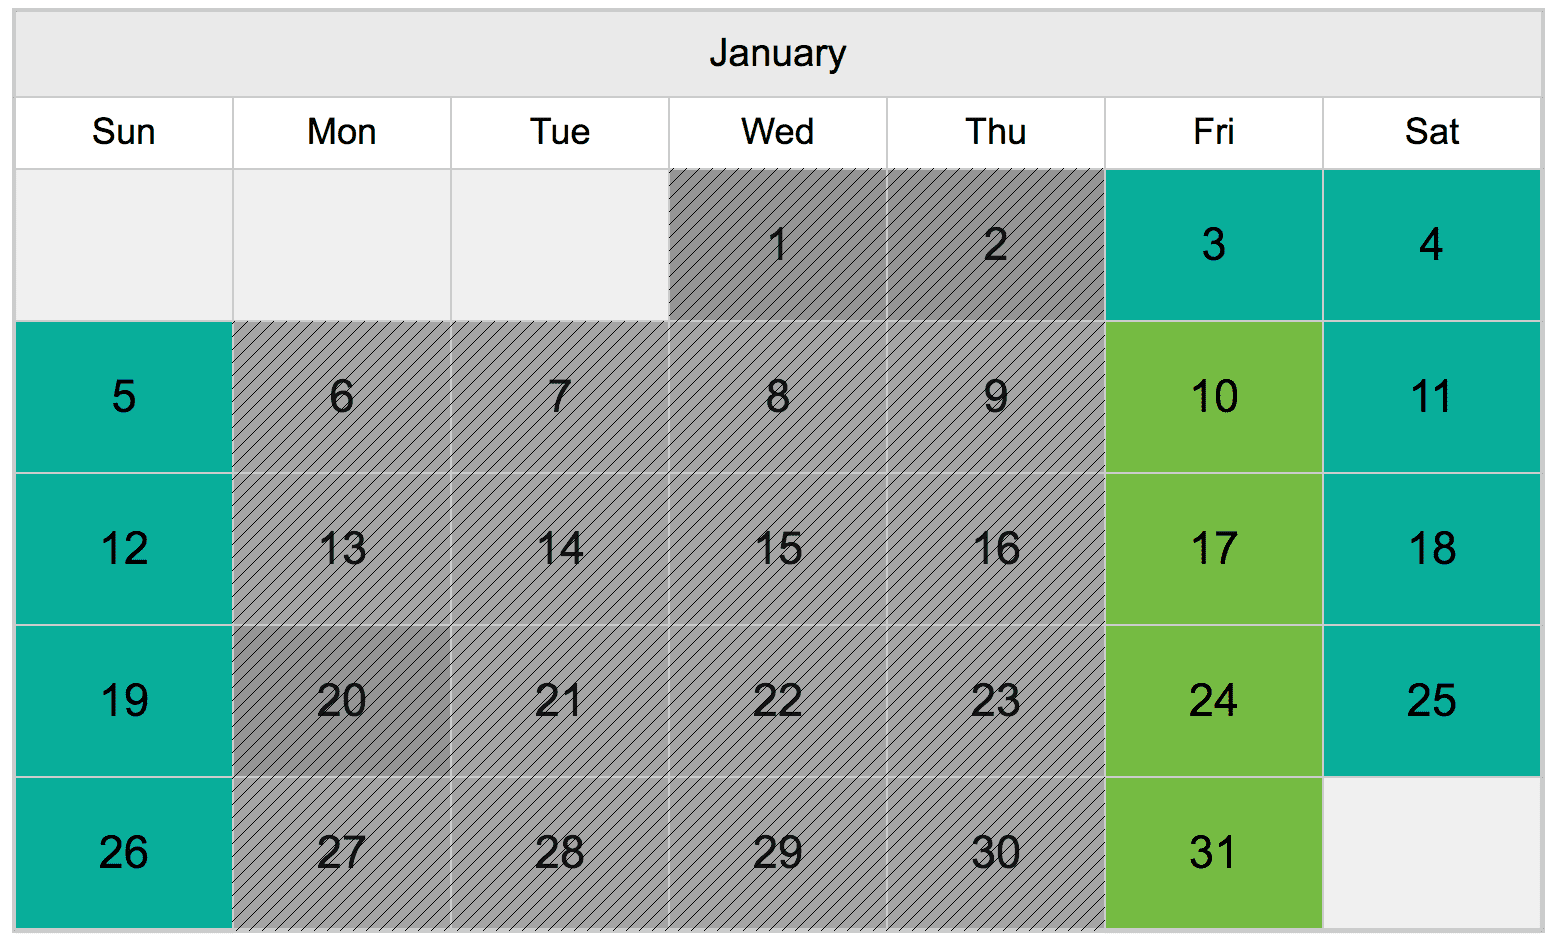 A calendar that shows pricing for Koala Signature Encounters at ZooTampa on each day during December 2019